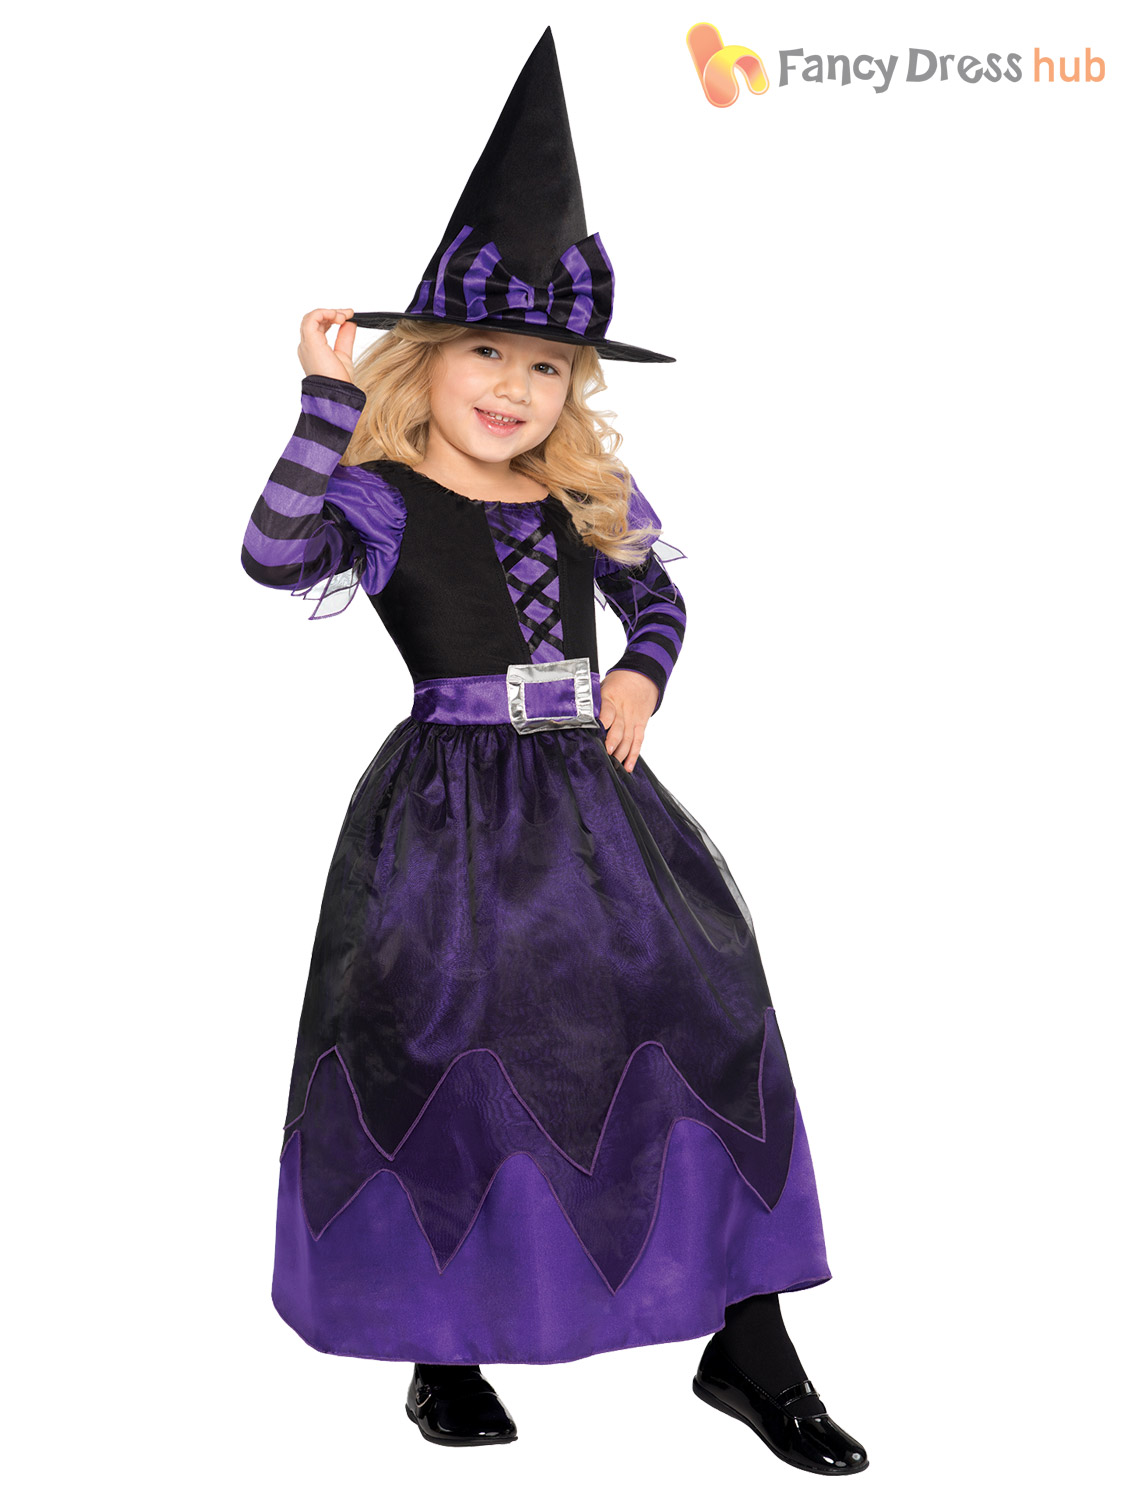 Details about Age 3,10 Girls Halloween Witch Fancy Dress Costume Kids  Childrens Party Witches